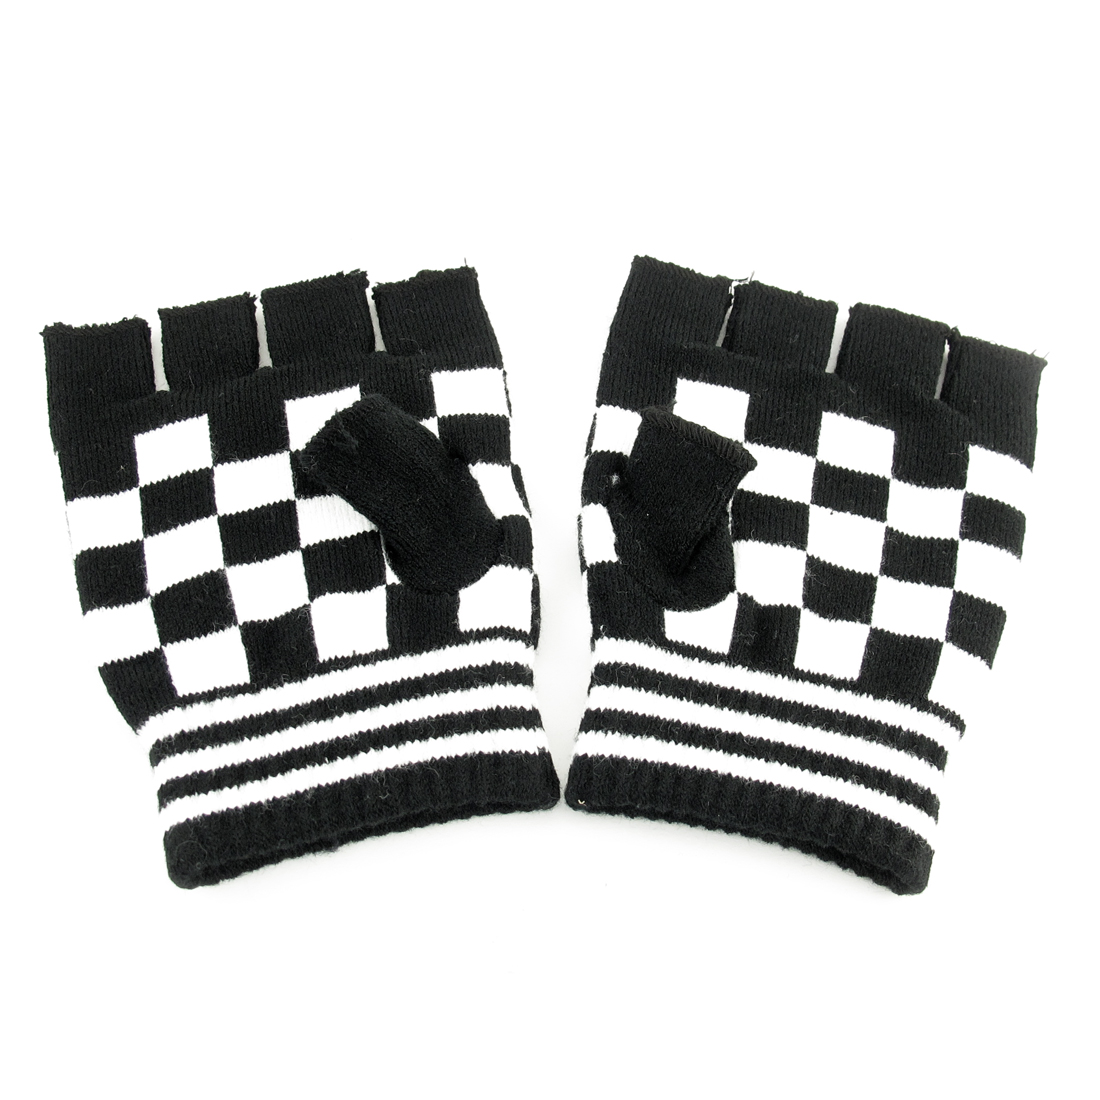 Pair Women Checkers Print Black White Knitted Elastic Half Finger Gloves